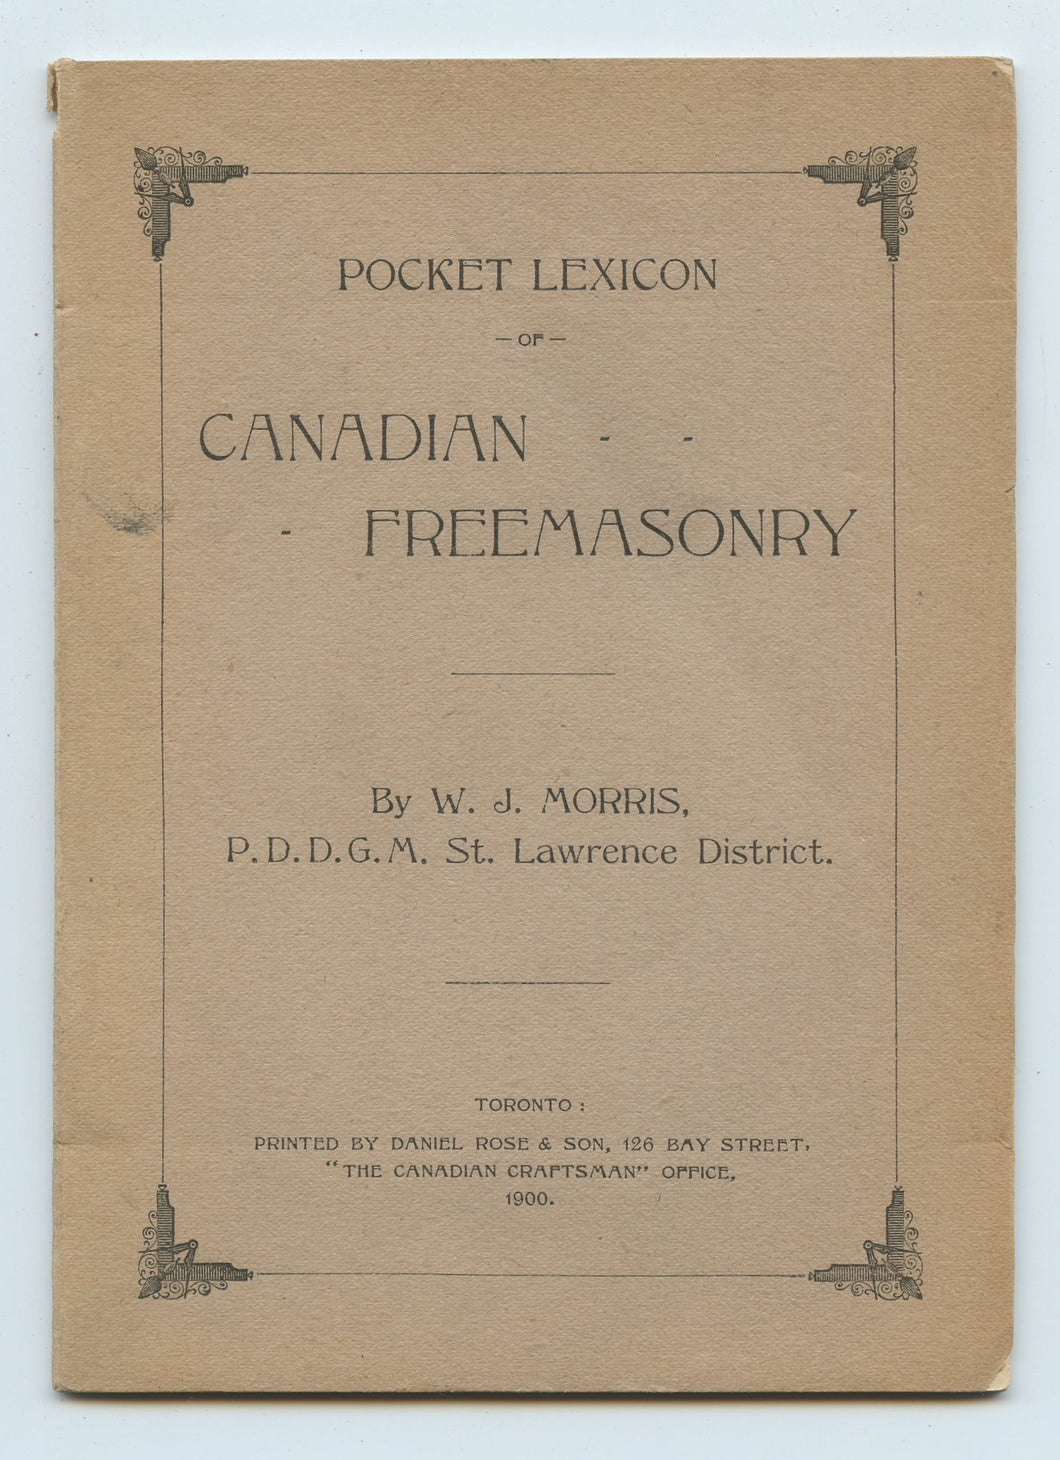 Pocket Lexicon of Canadian Freemasonry